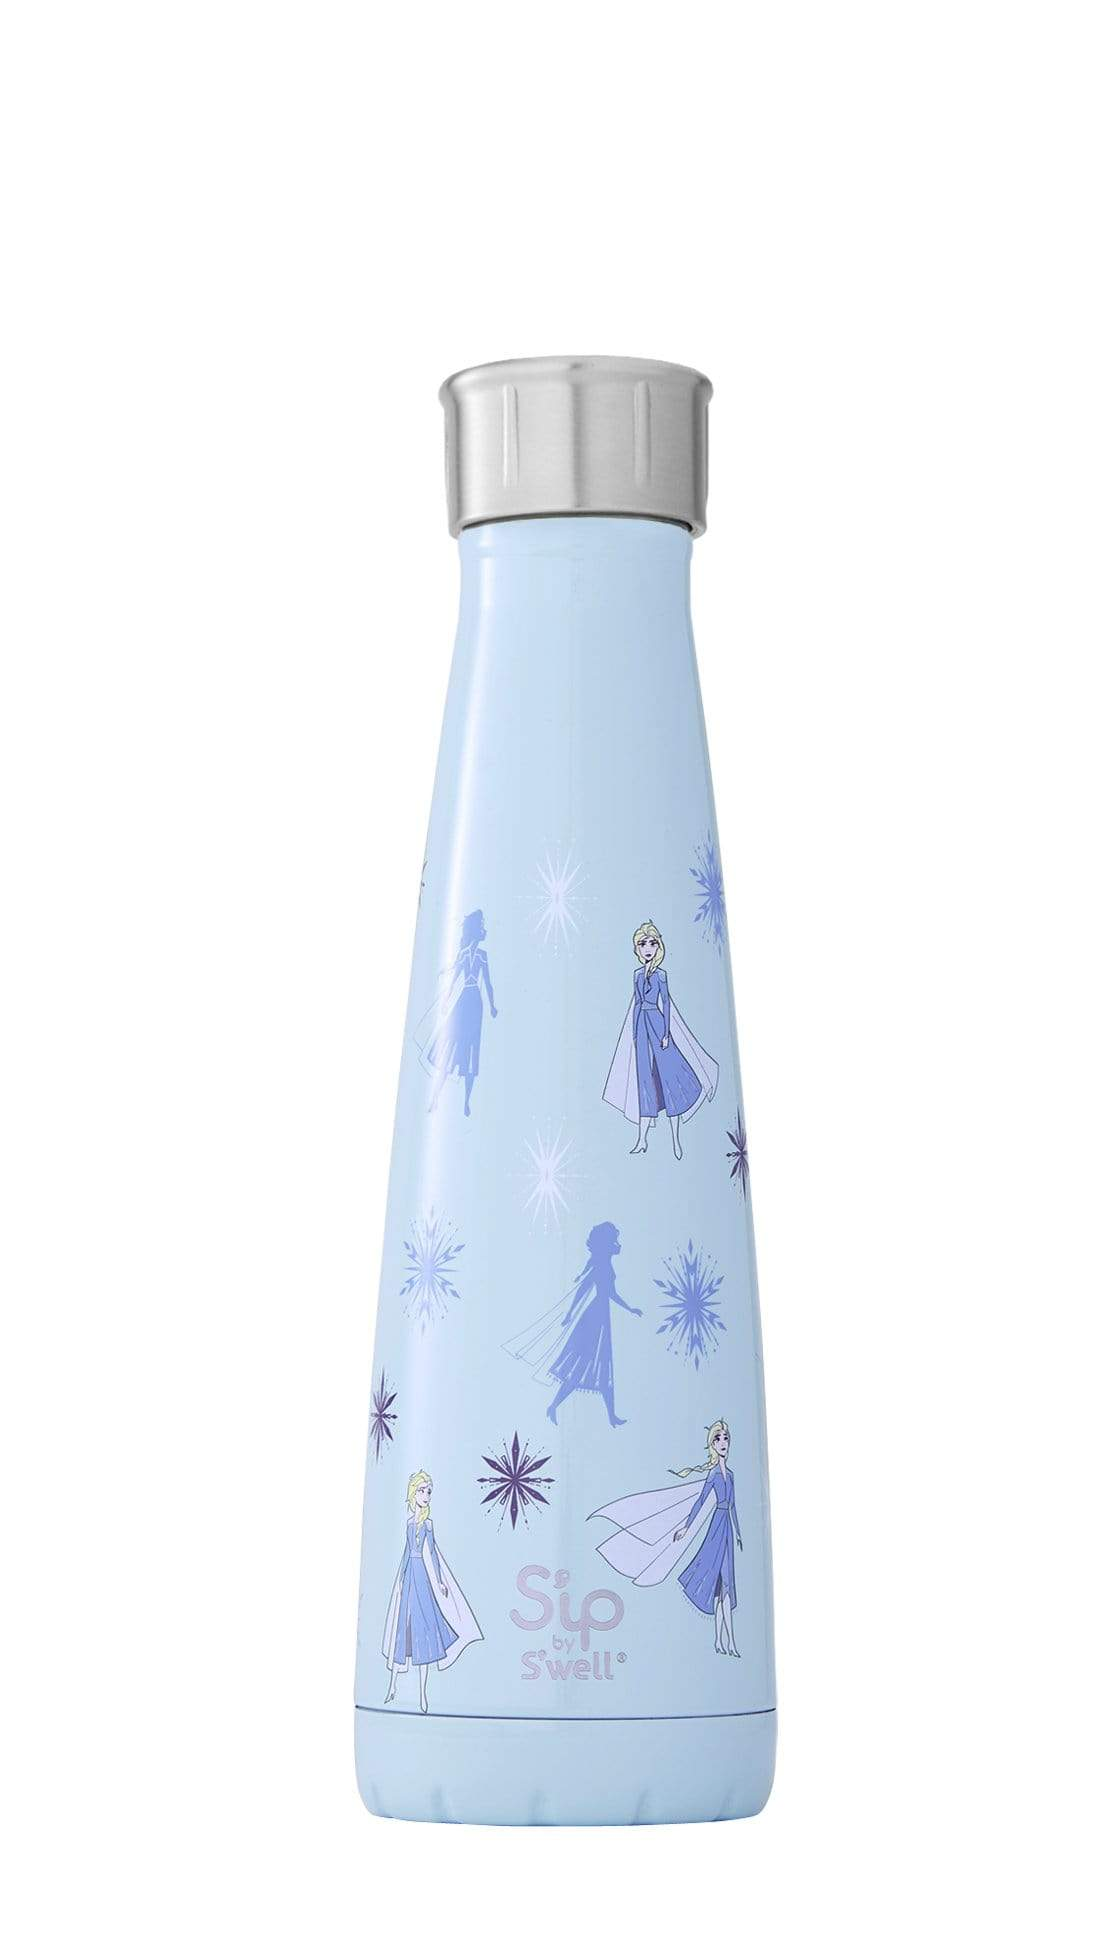 Sip by Swell 15oz/450ml Disney Frozen/Queen of Arendelle/Elsa Termosz